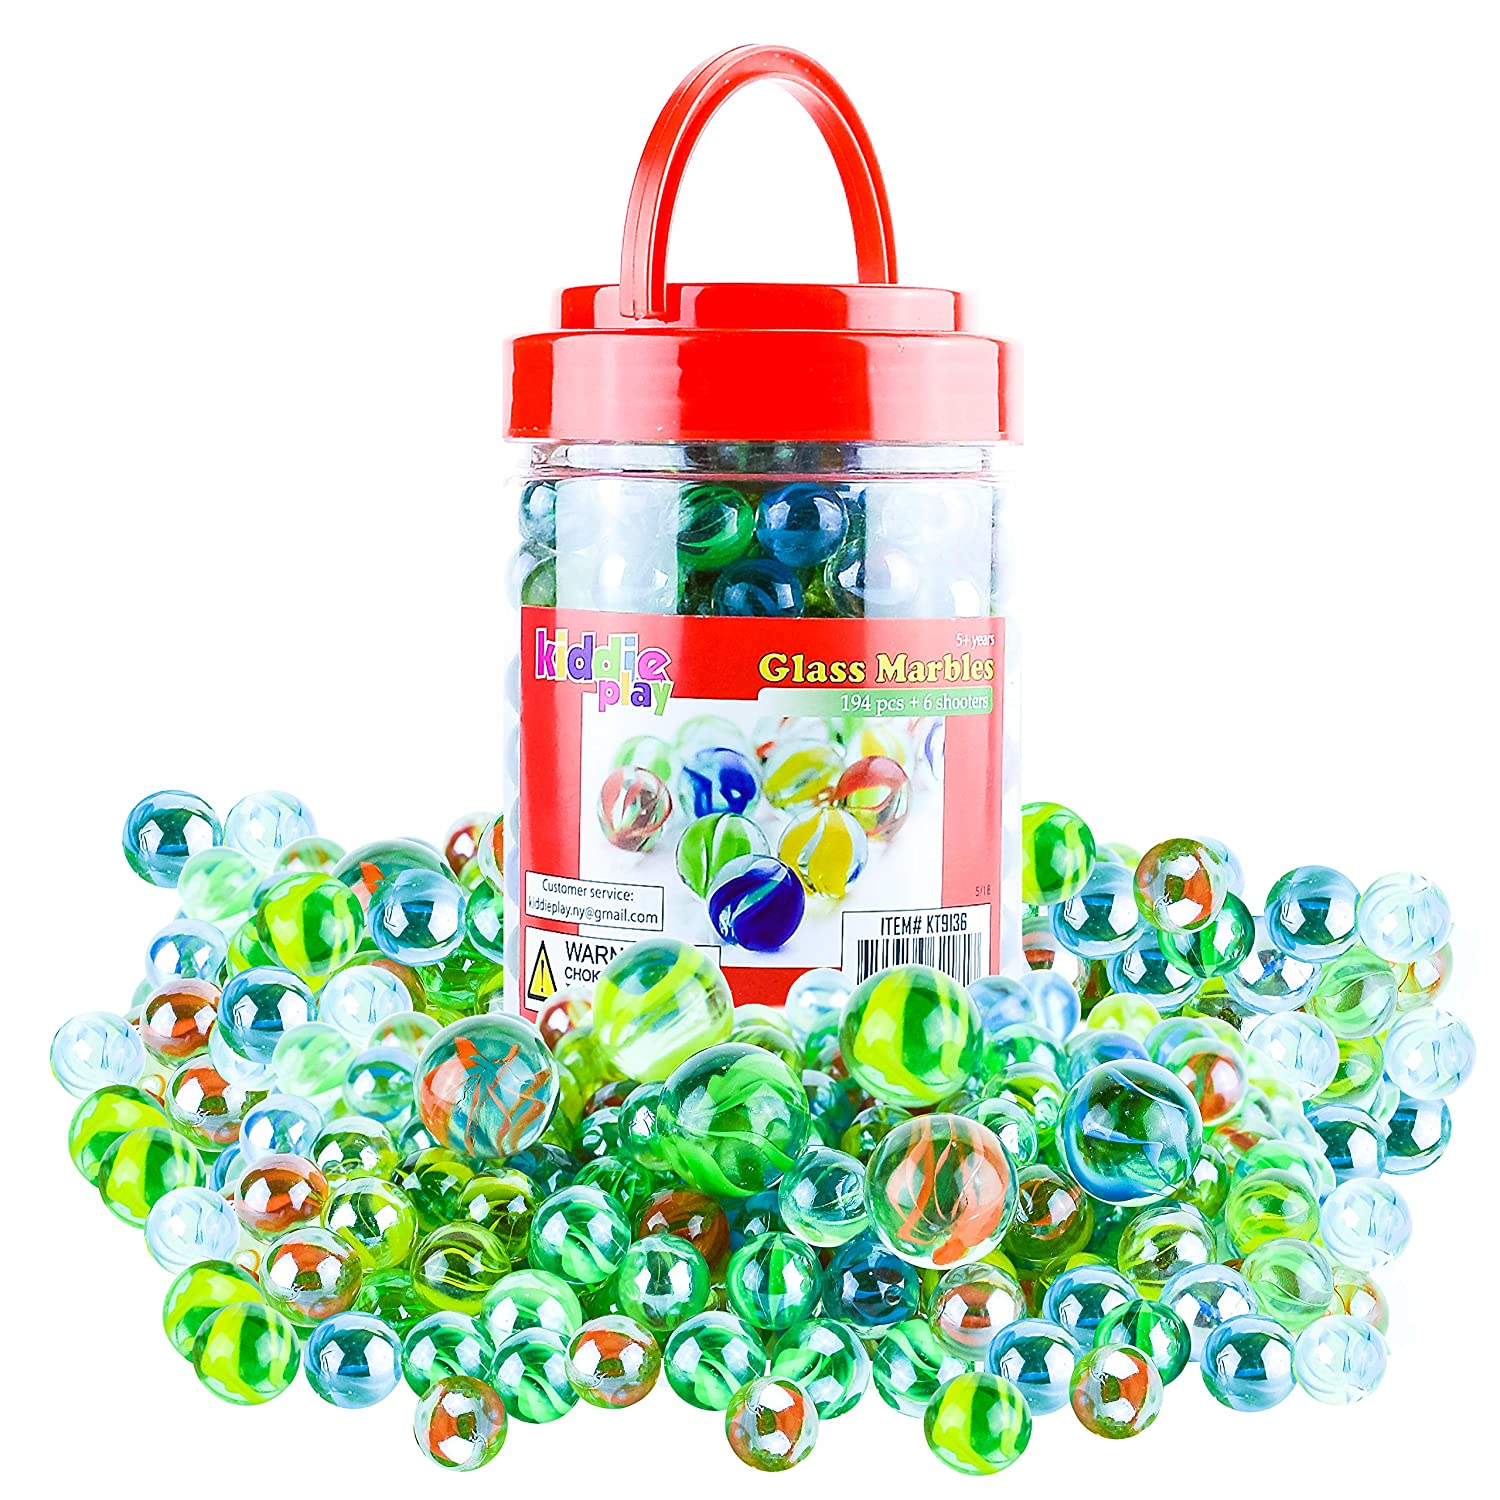 Kiddie Play 200 Glass Marbles for Kids Bulk Including 6 Shooters in Reusable Storage Box